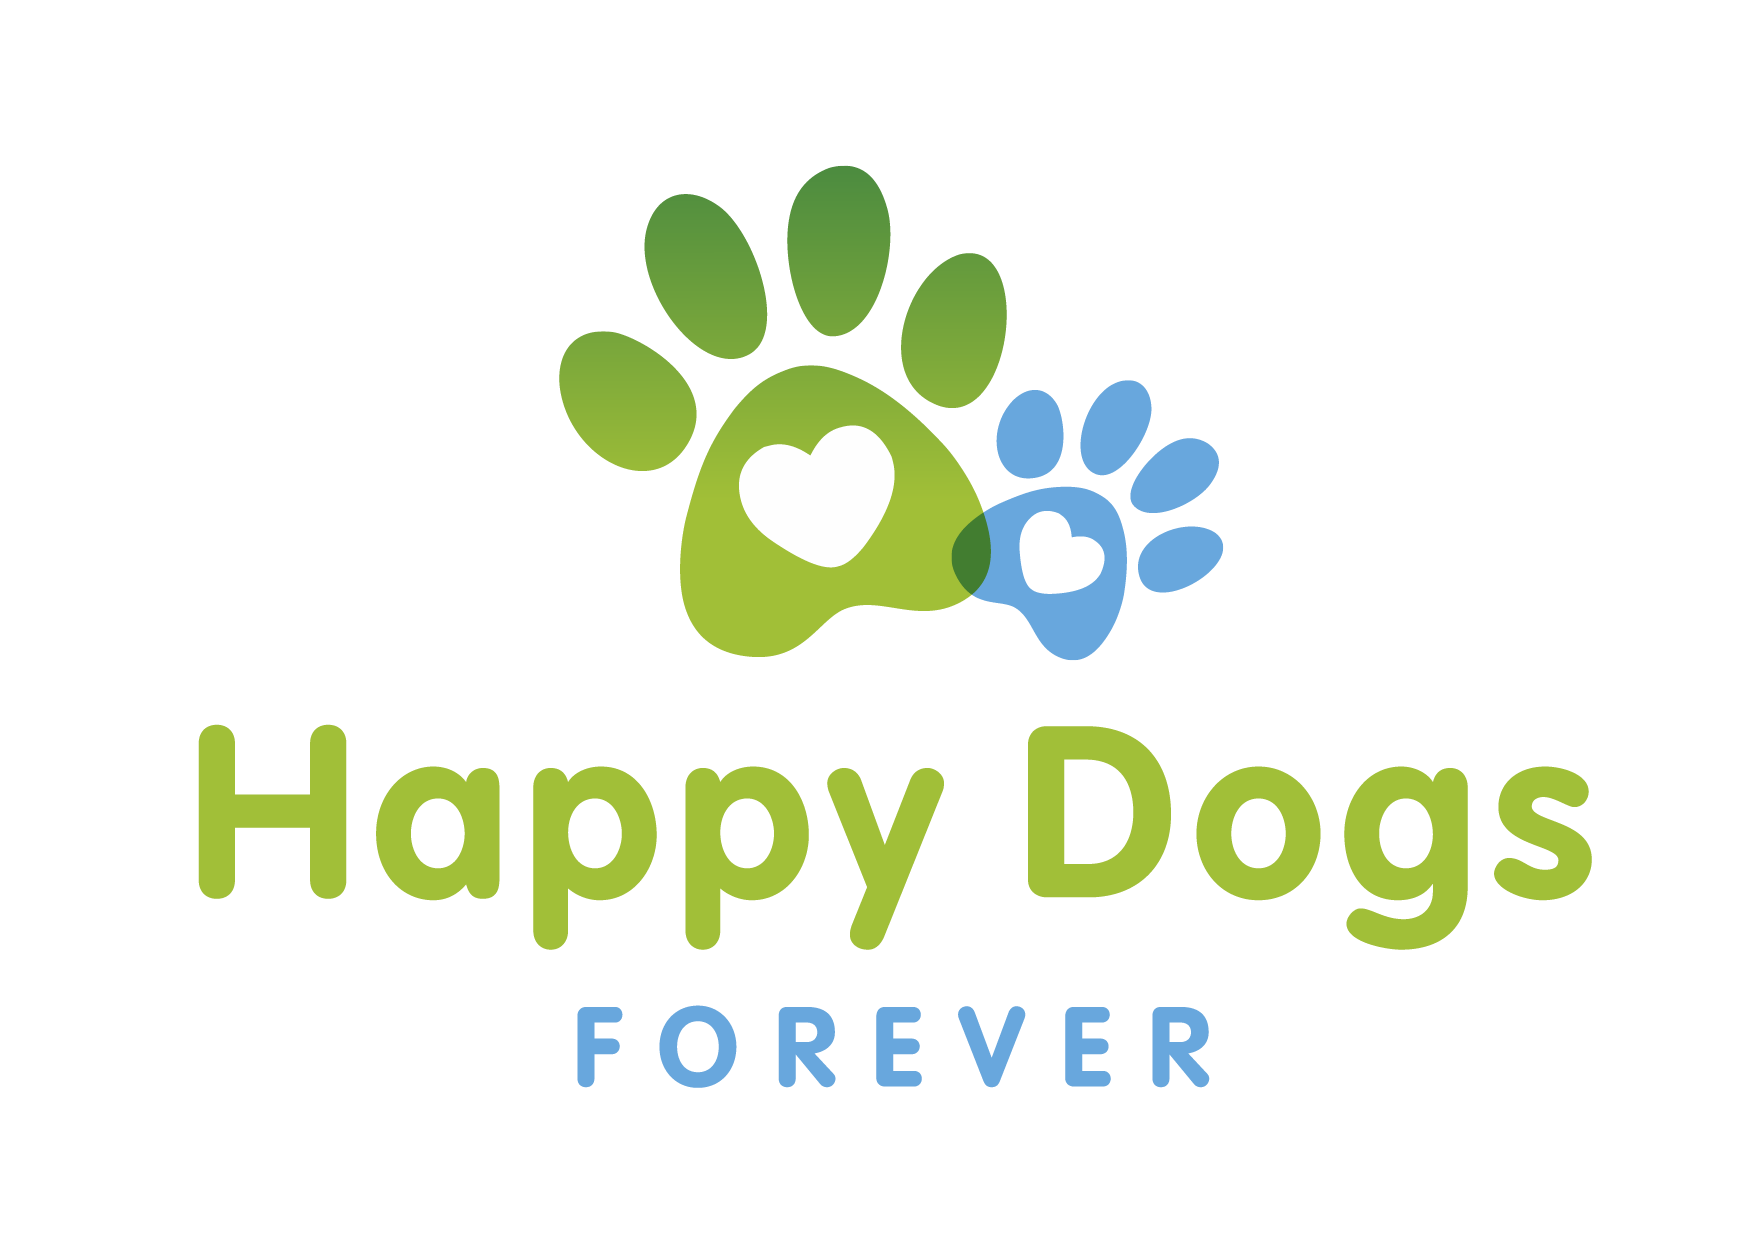 Happy Dogs Forever